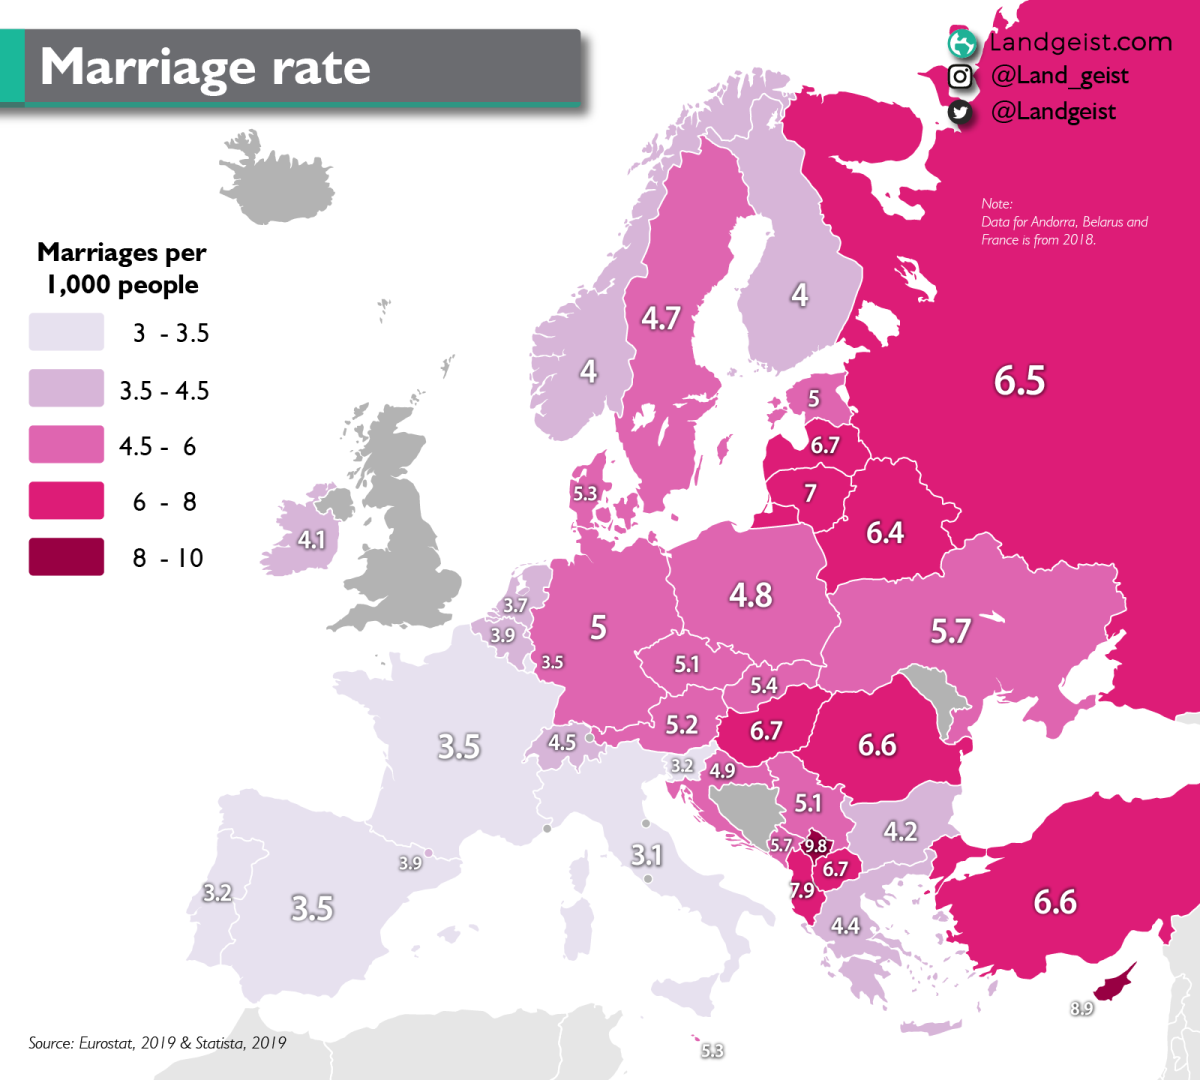 Map of the marriage rate in Europe.